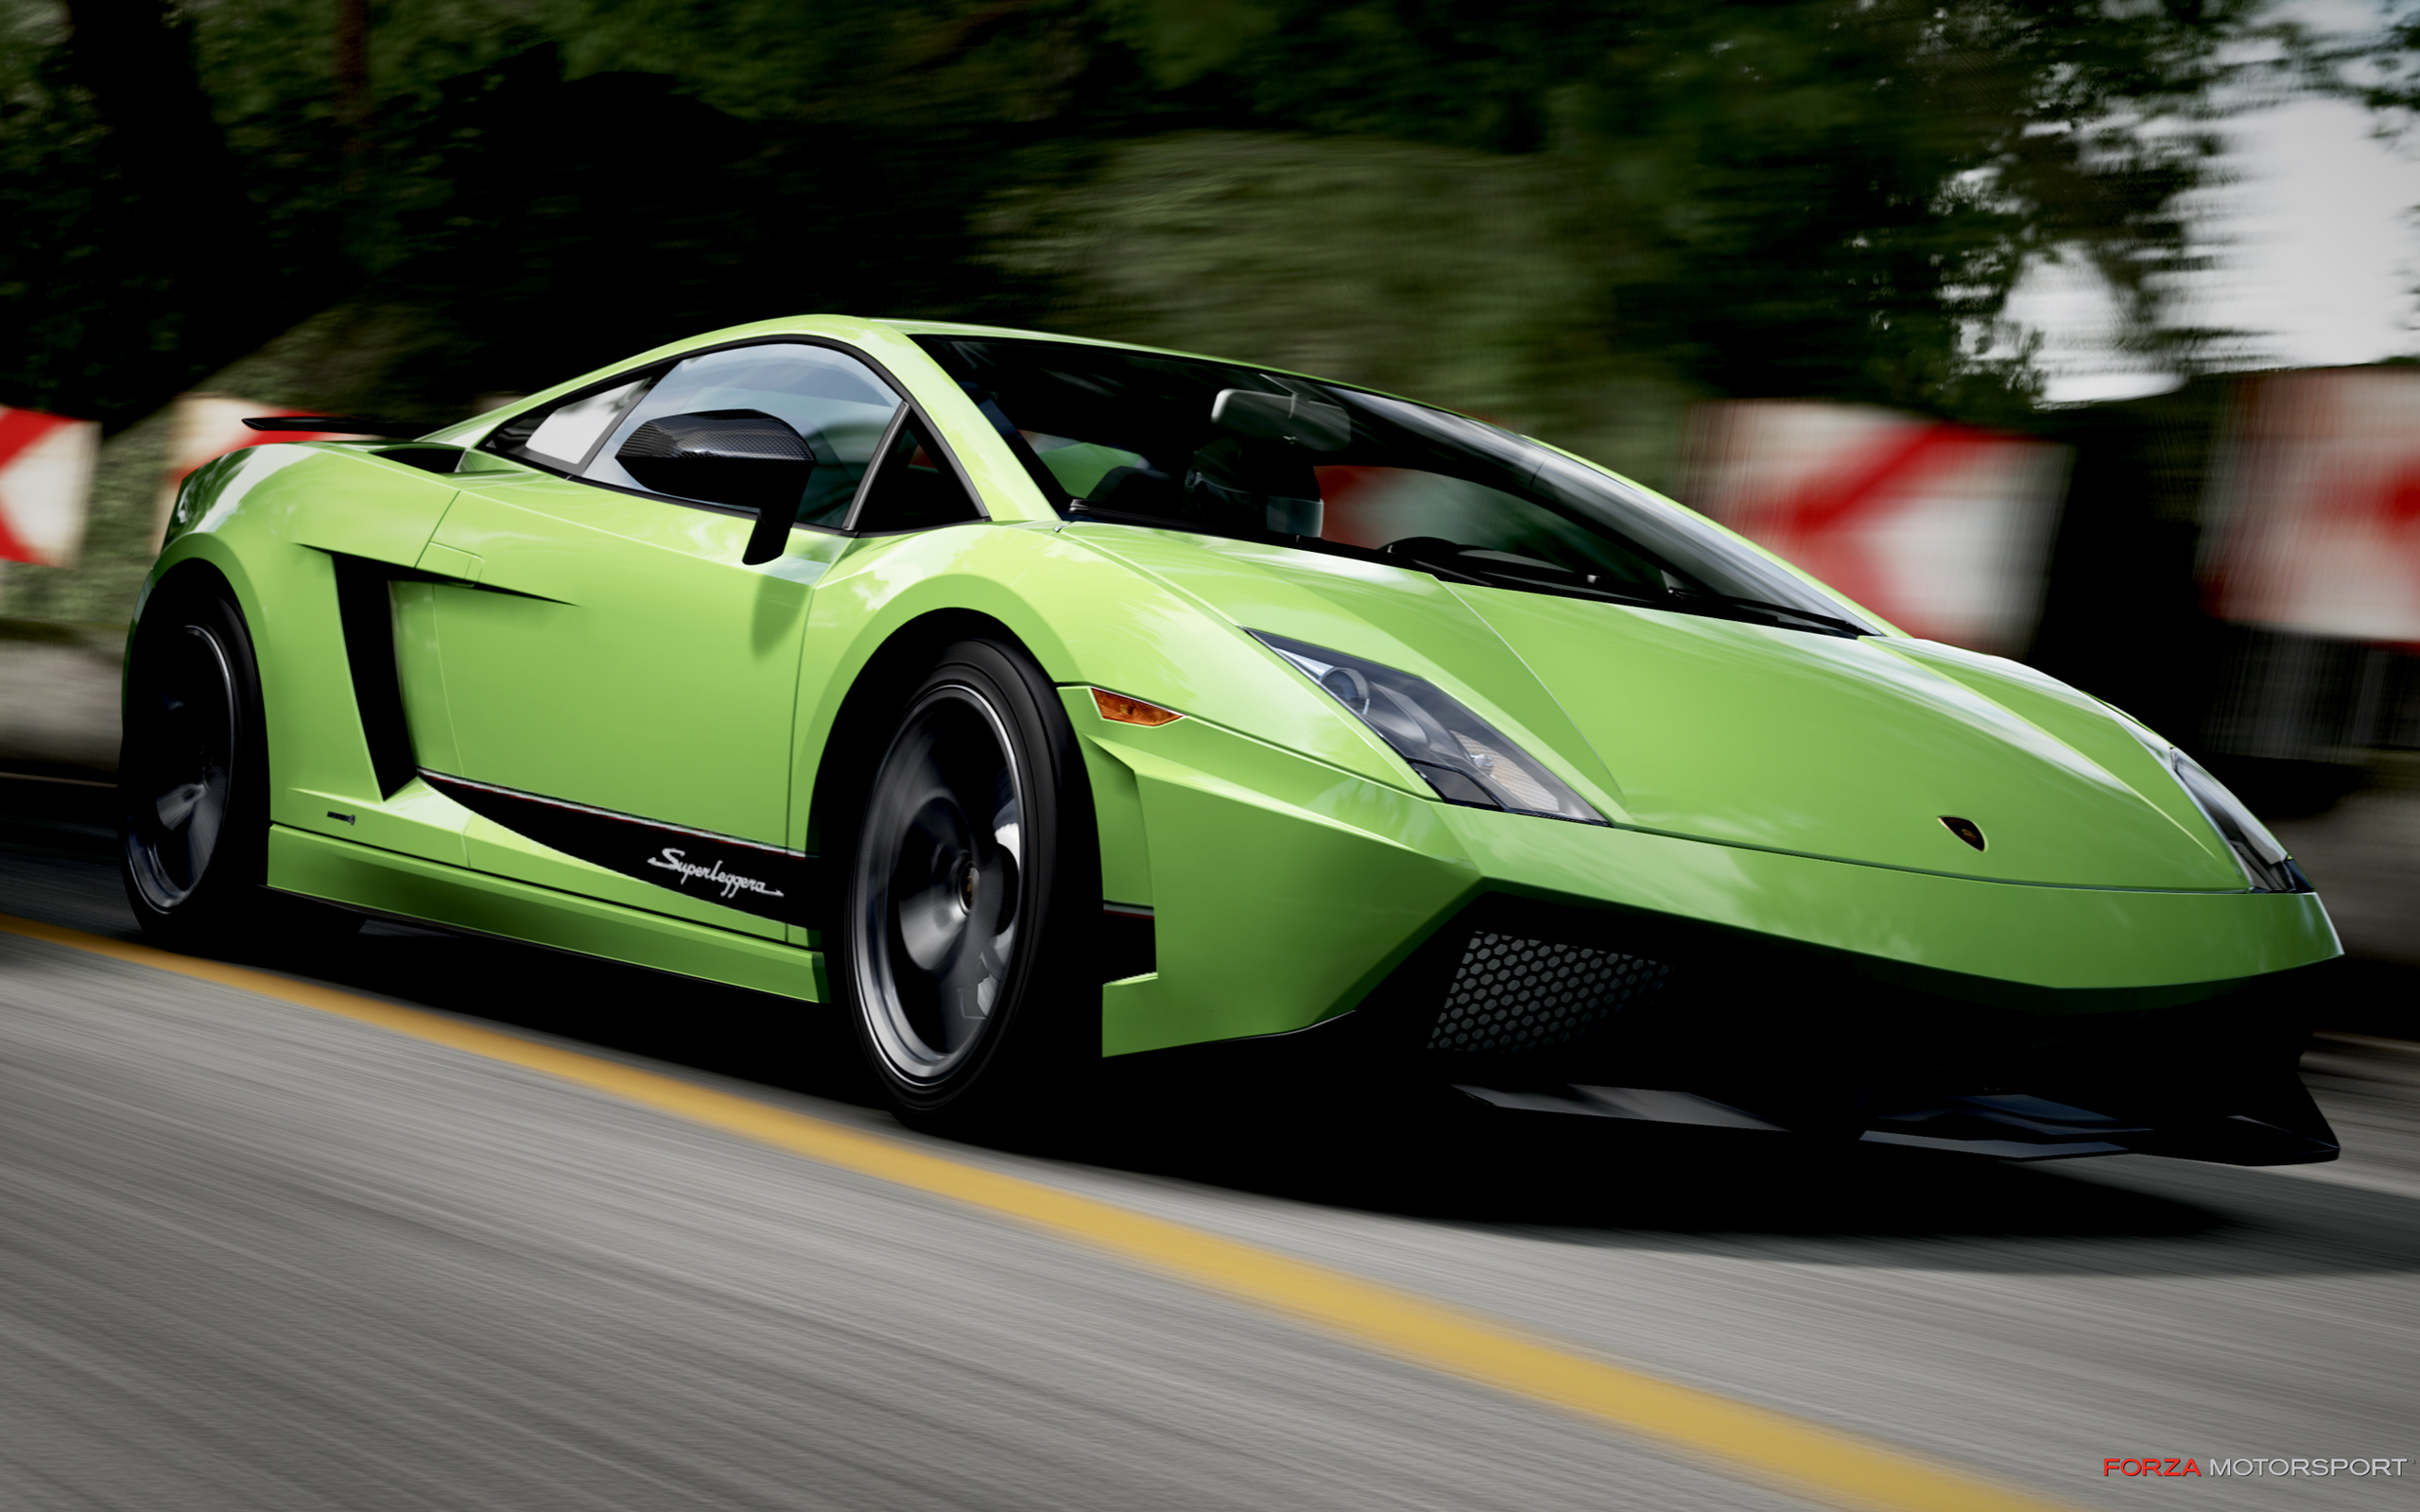 Lamborghini Gallardo in Forza Motorsport 4 471.13 Kb